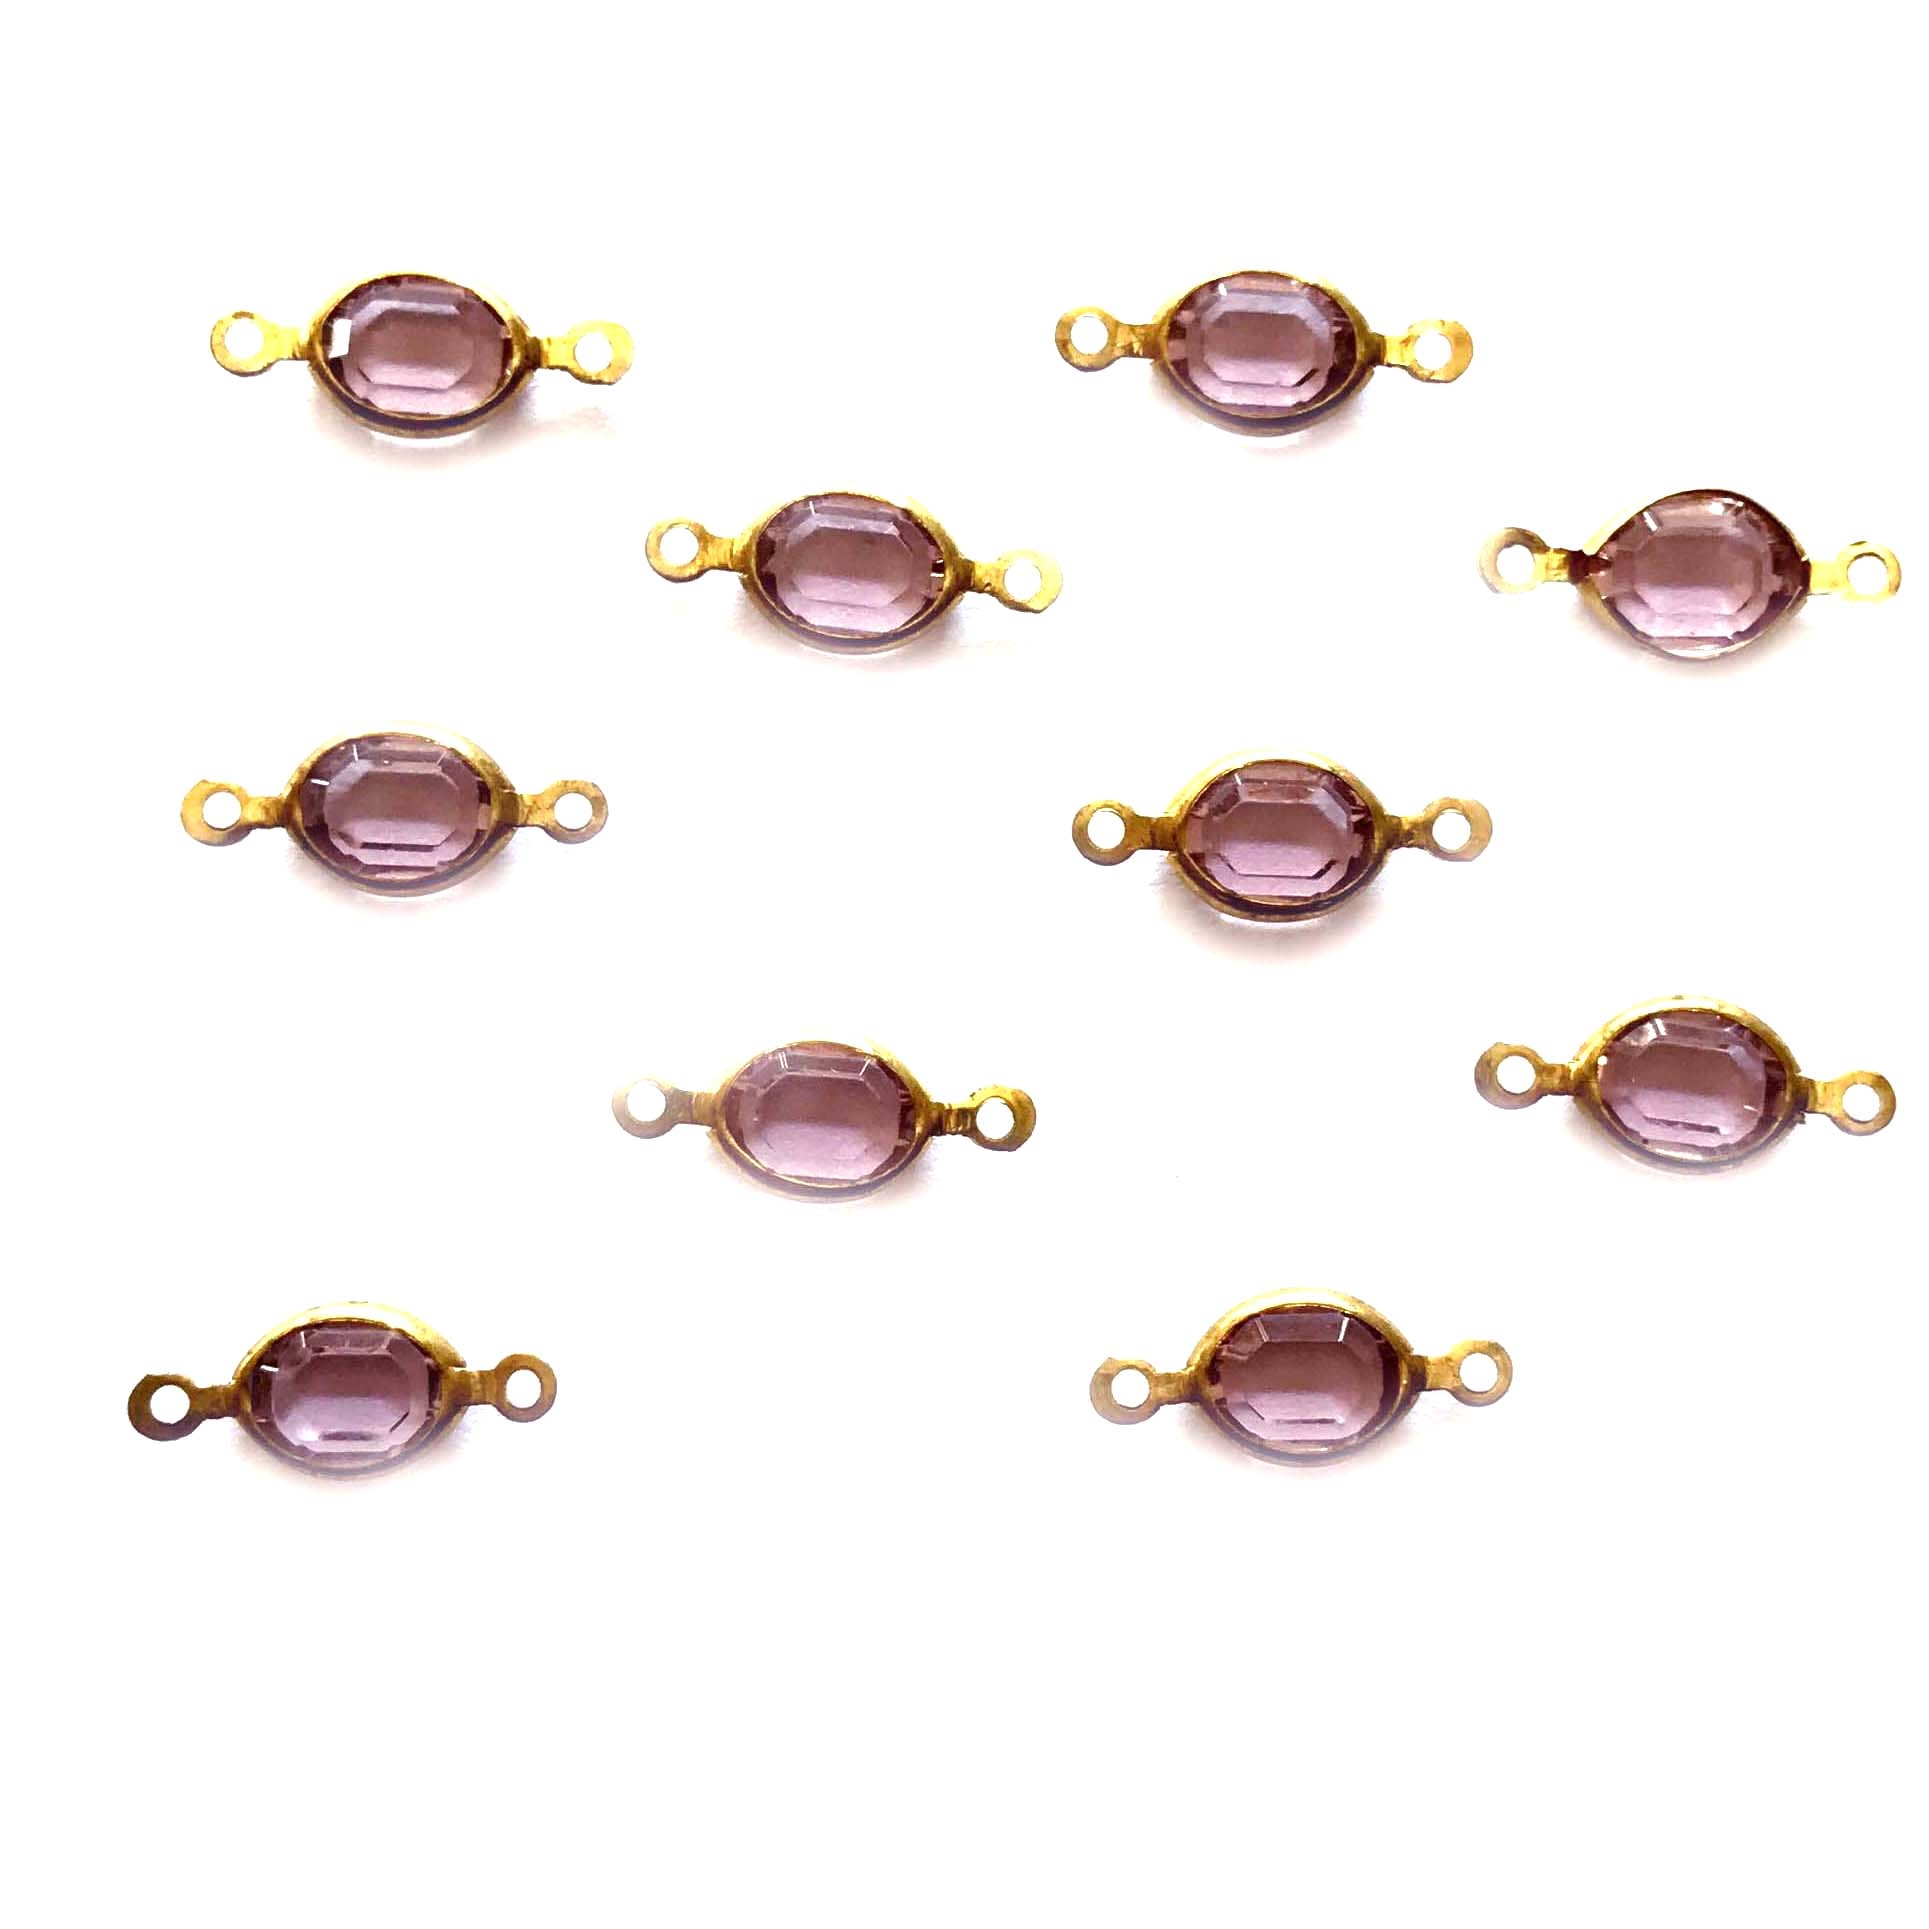 Swarovski Connectors, purple, 03834, connectors, bezel wrapped stones, glass, glass stones, brass, vintage style jewelry, US made, nickel free, Chanels,  jewelry making, vintage supplies, B'sue Boutiques